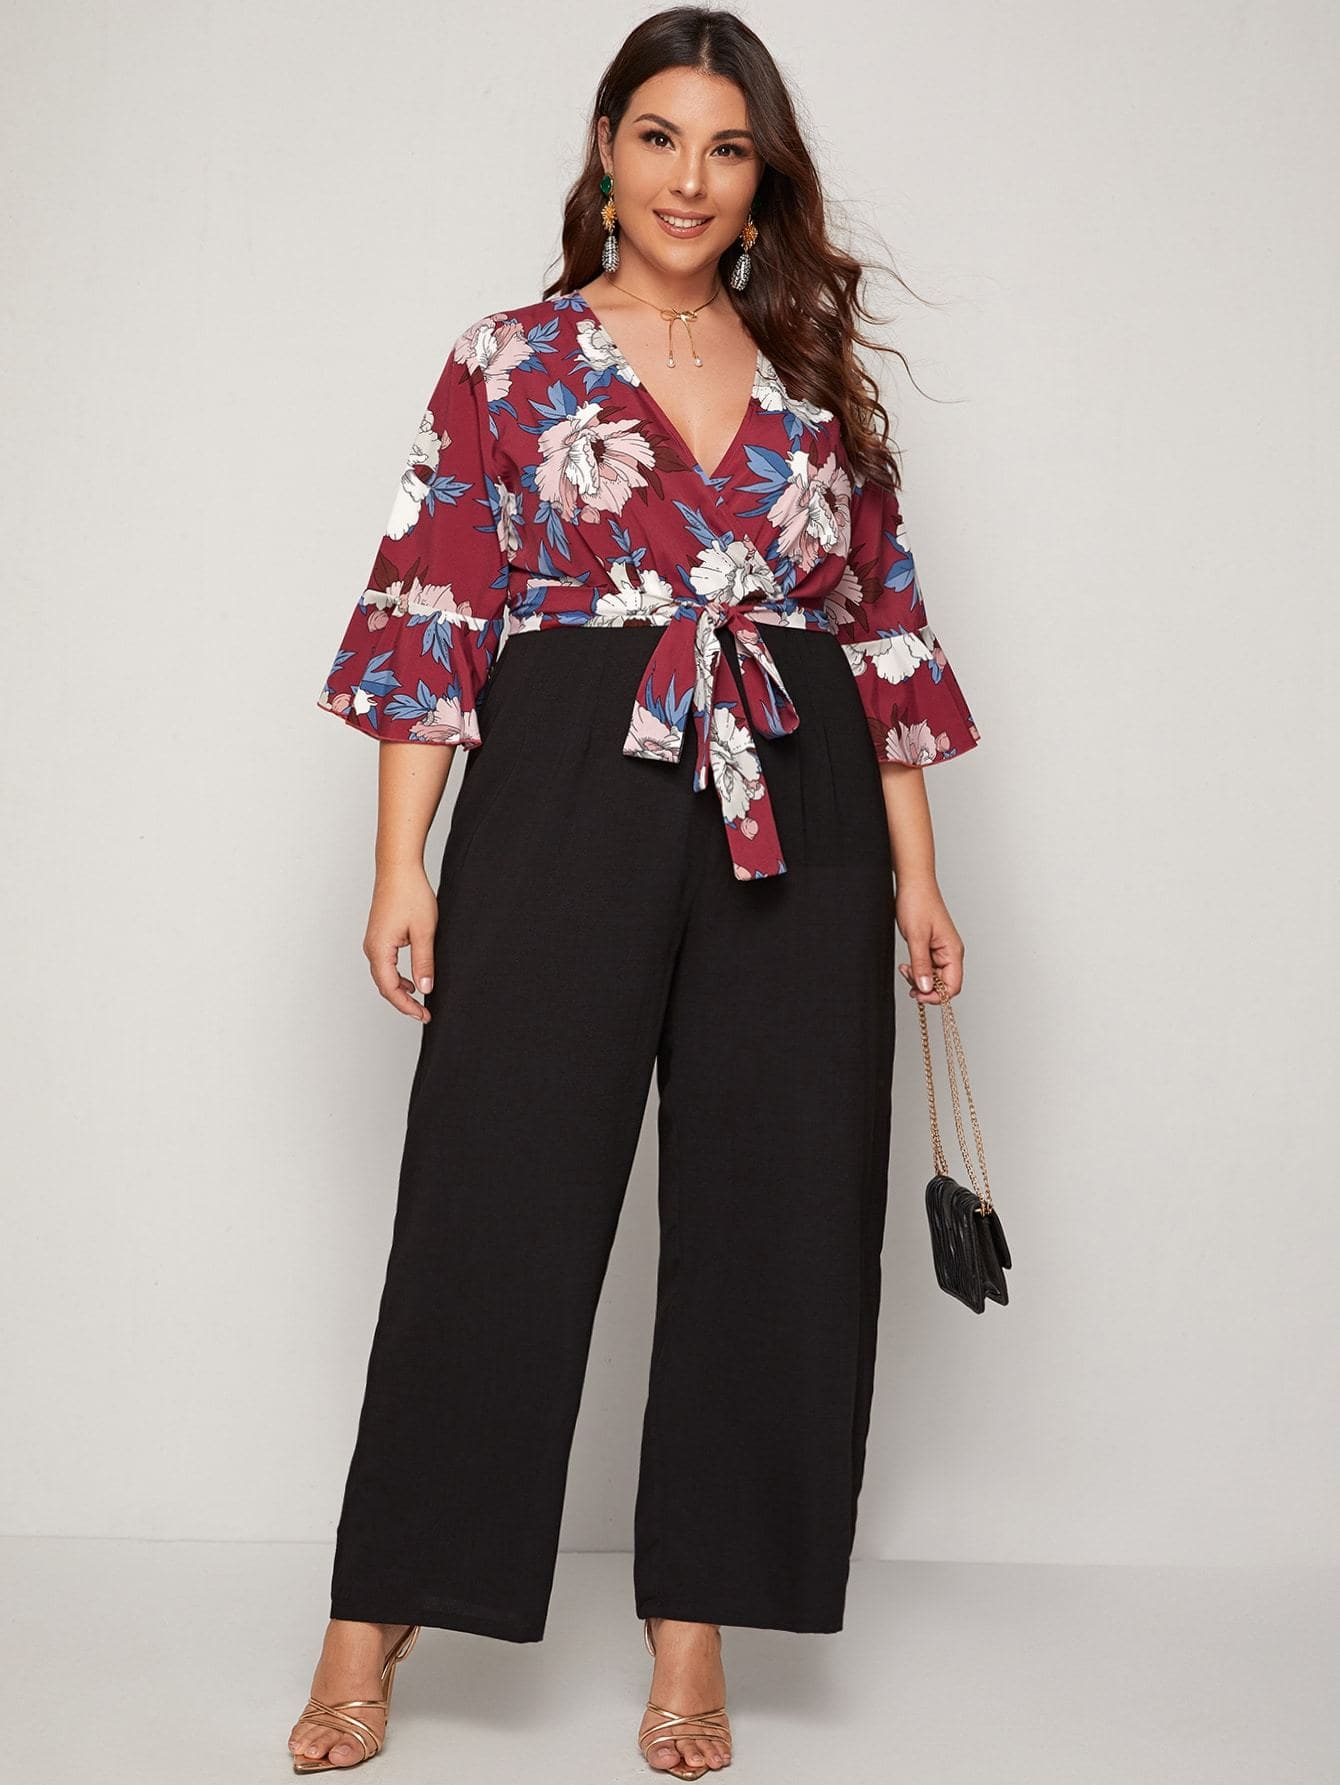 Plus Surplice Neck Floral Print Wide Leg Combo Jumpsuit - FLJ CORPORATIONS